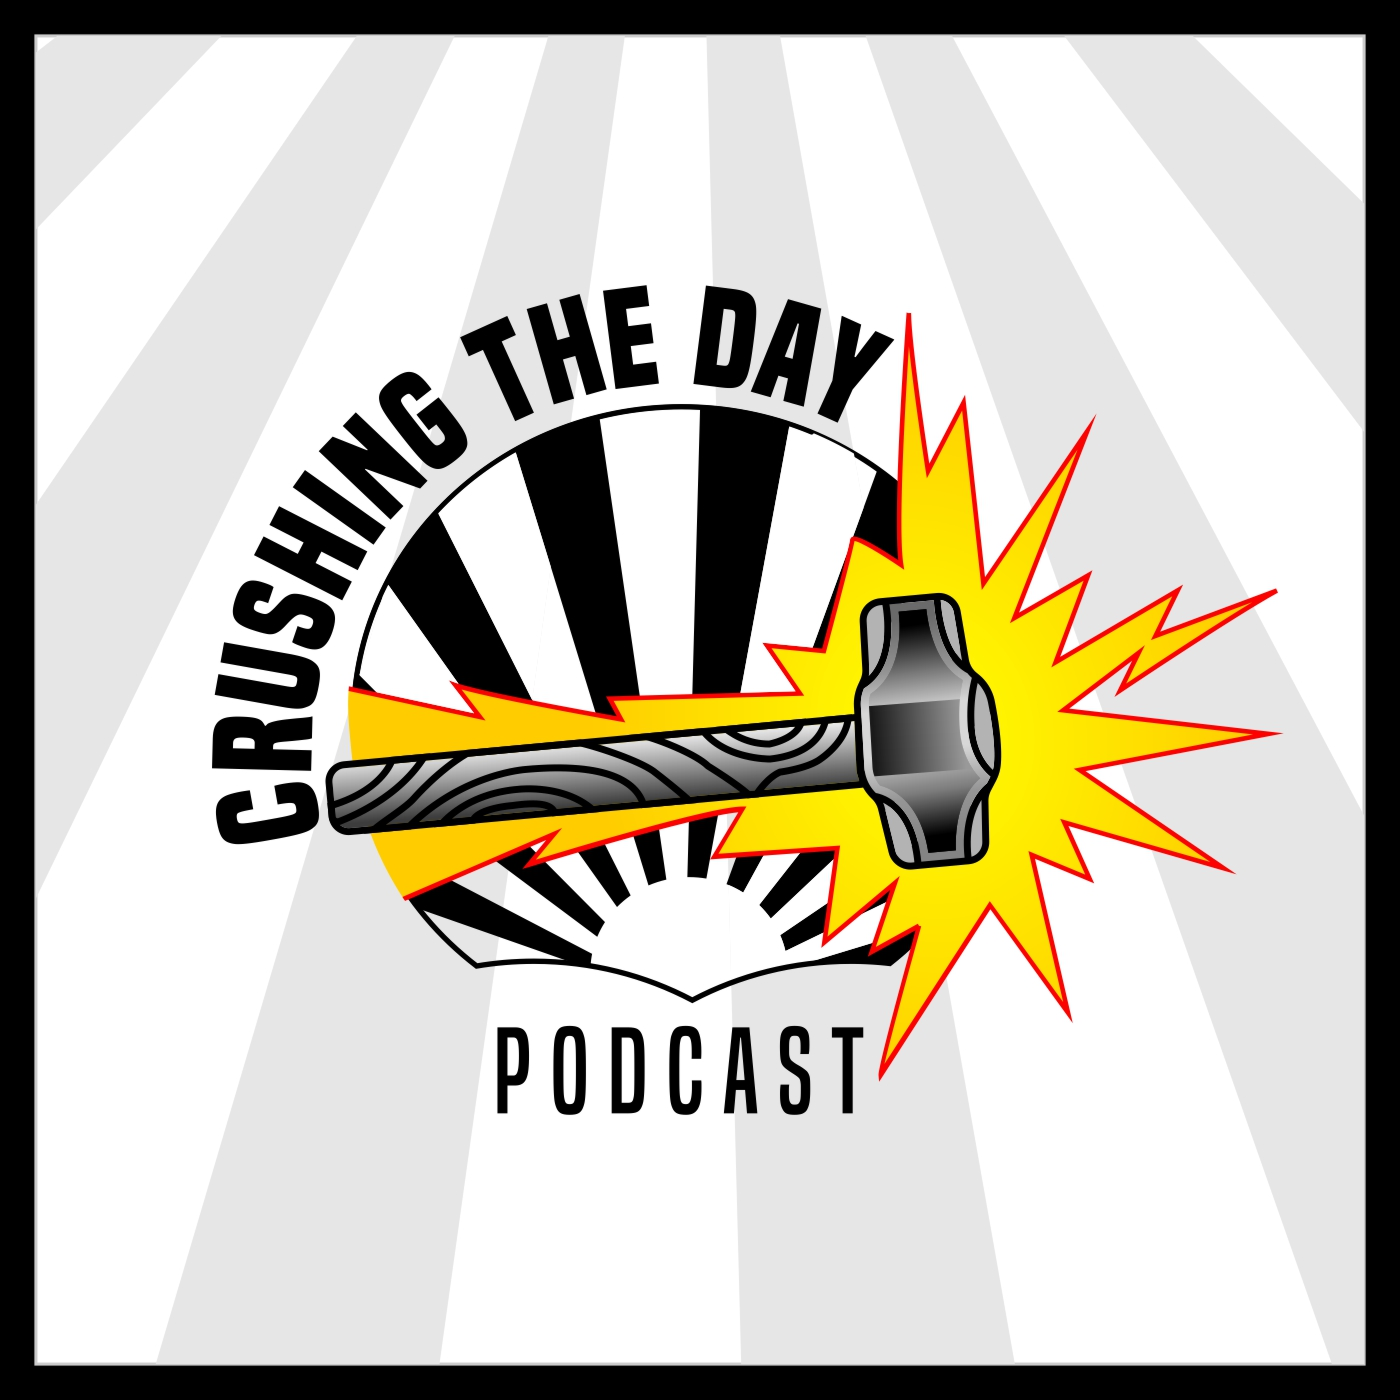 Crushing The Day Podcast show art